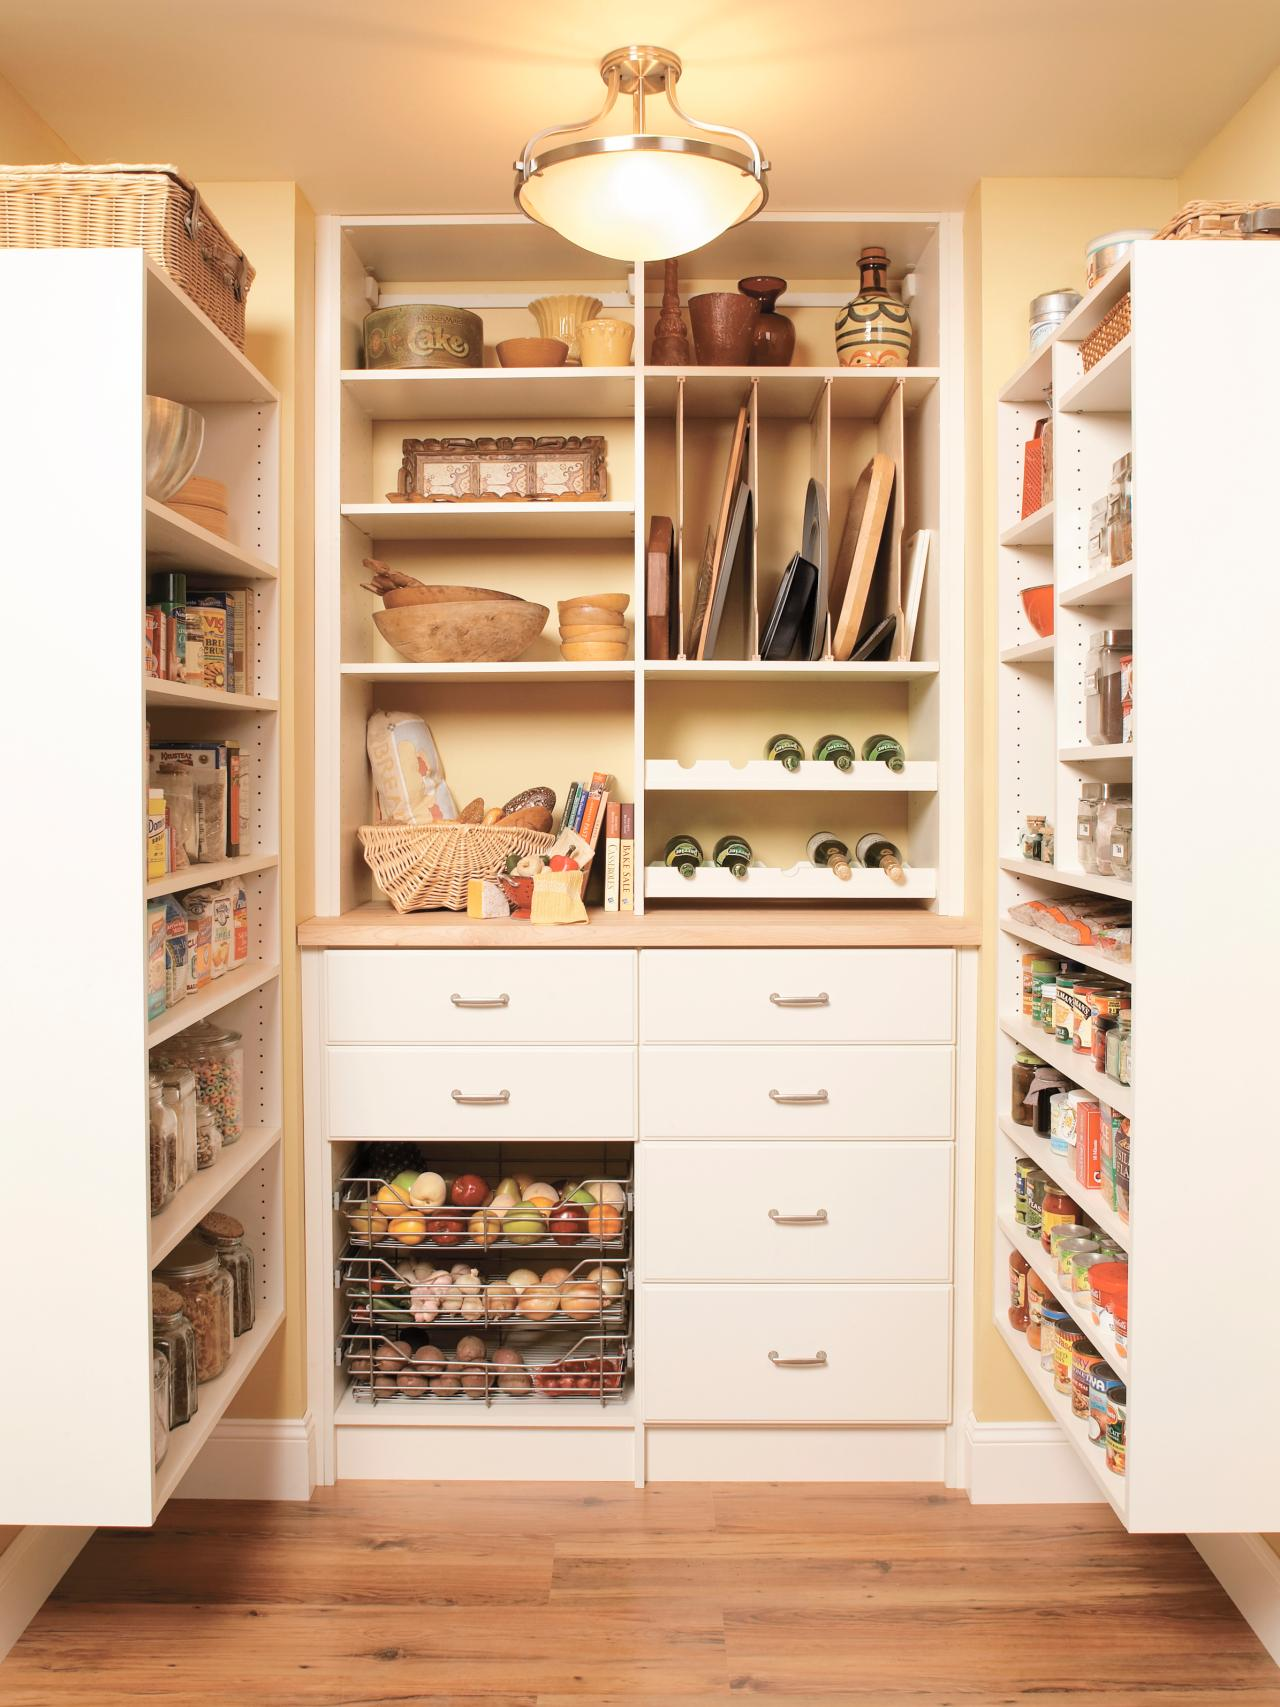 Optimize Your Larger Pantry With A Custom Storage System